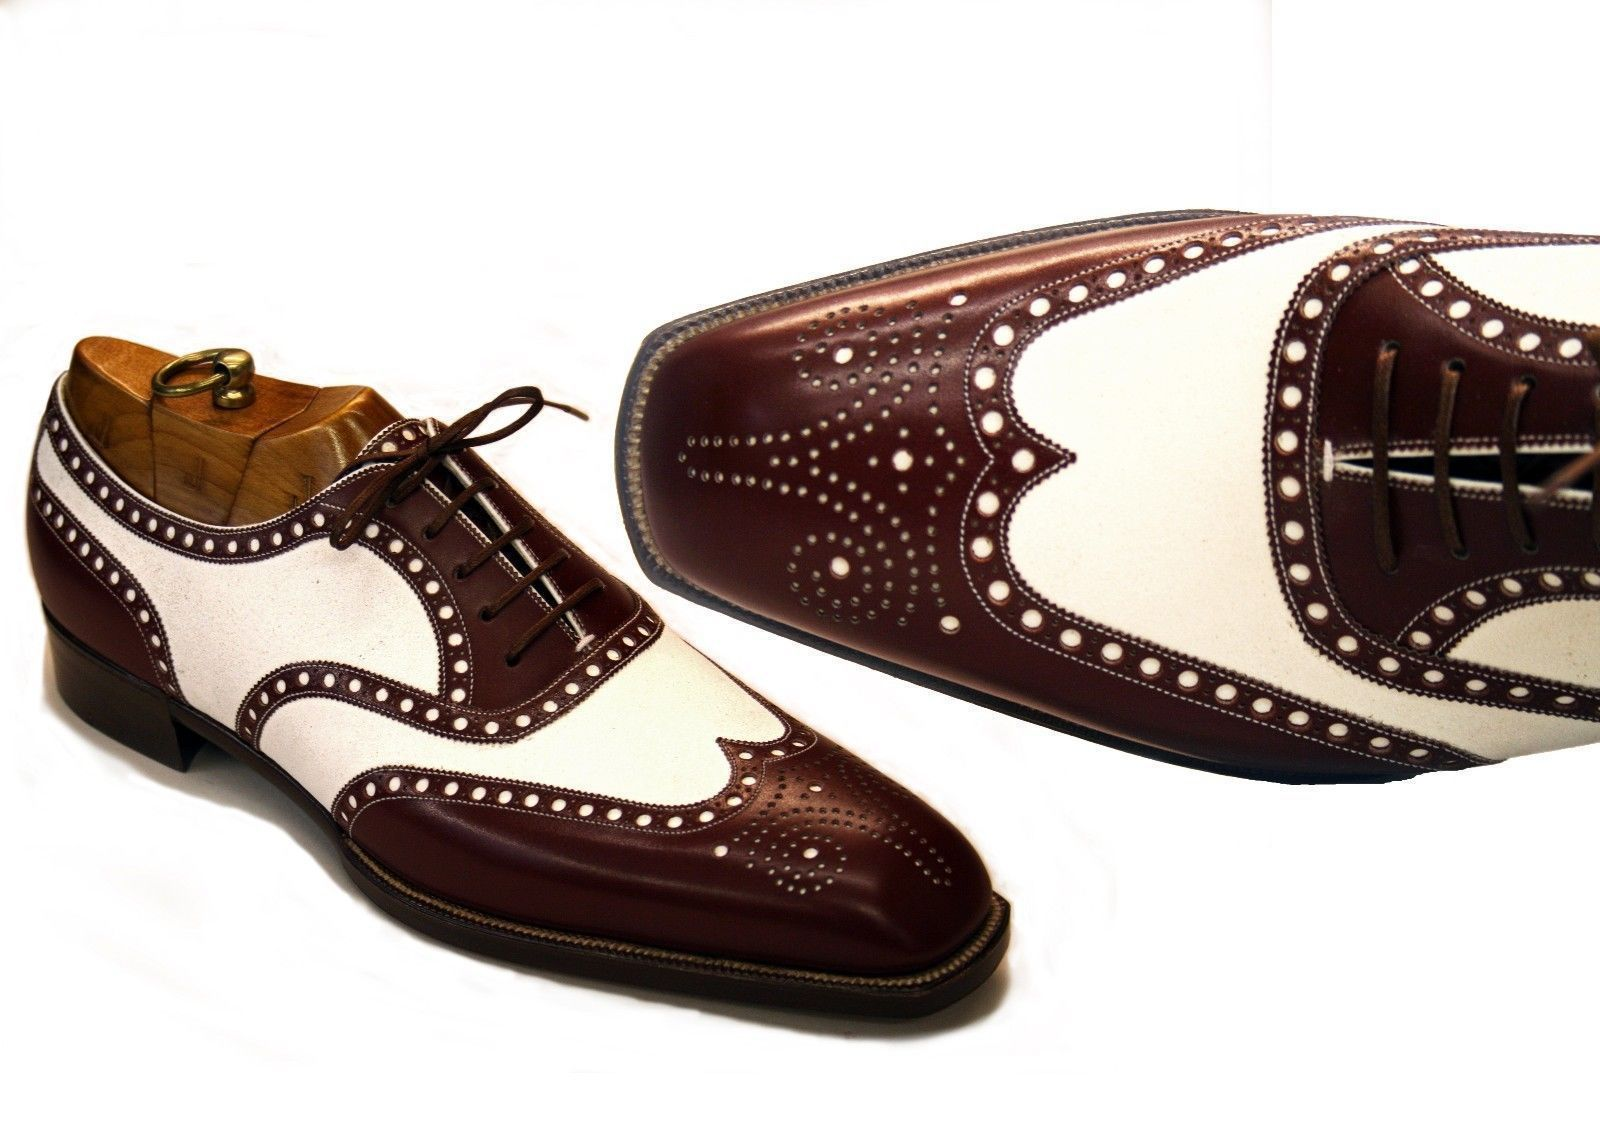 Handmade Men's Brown & White Wing Tip Heart Medallion Oxford Leather Shoes